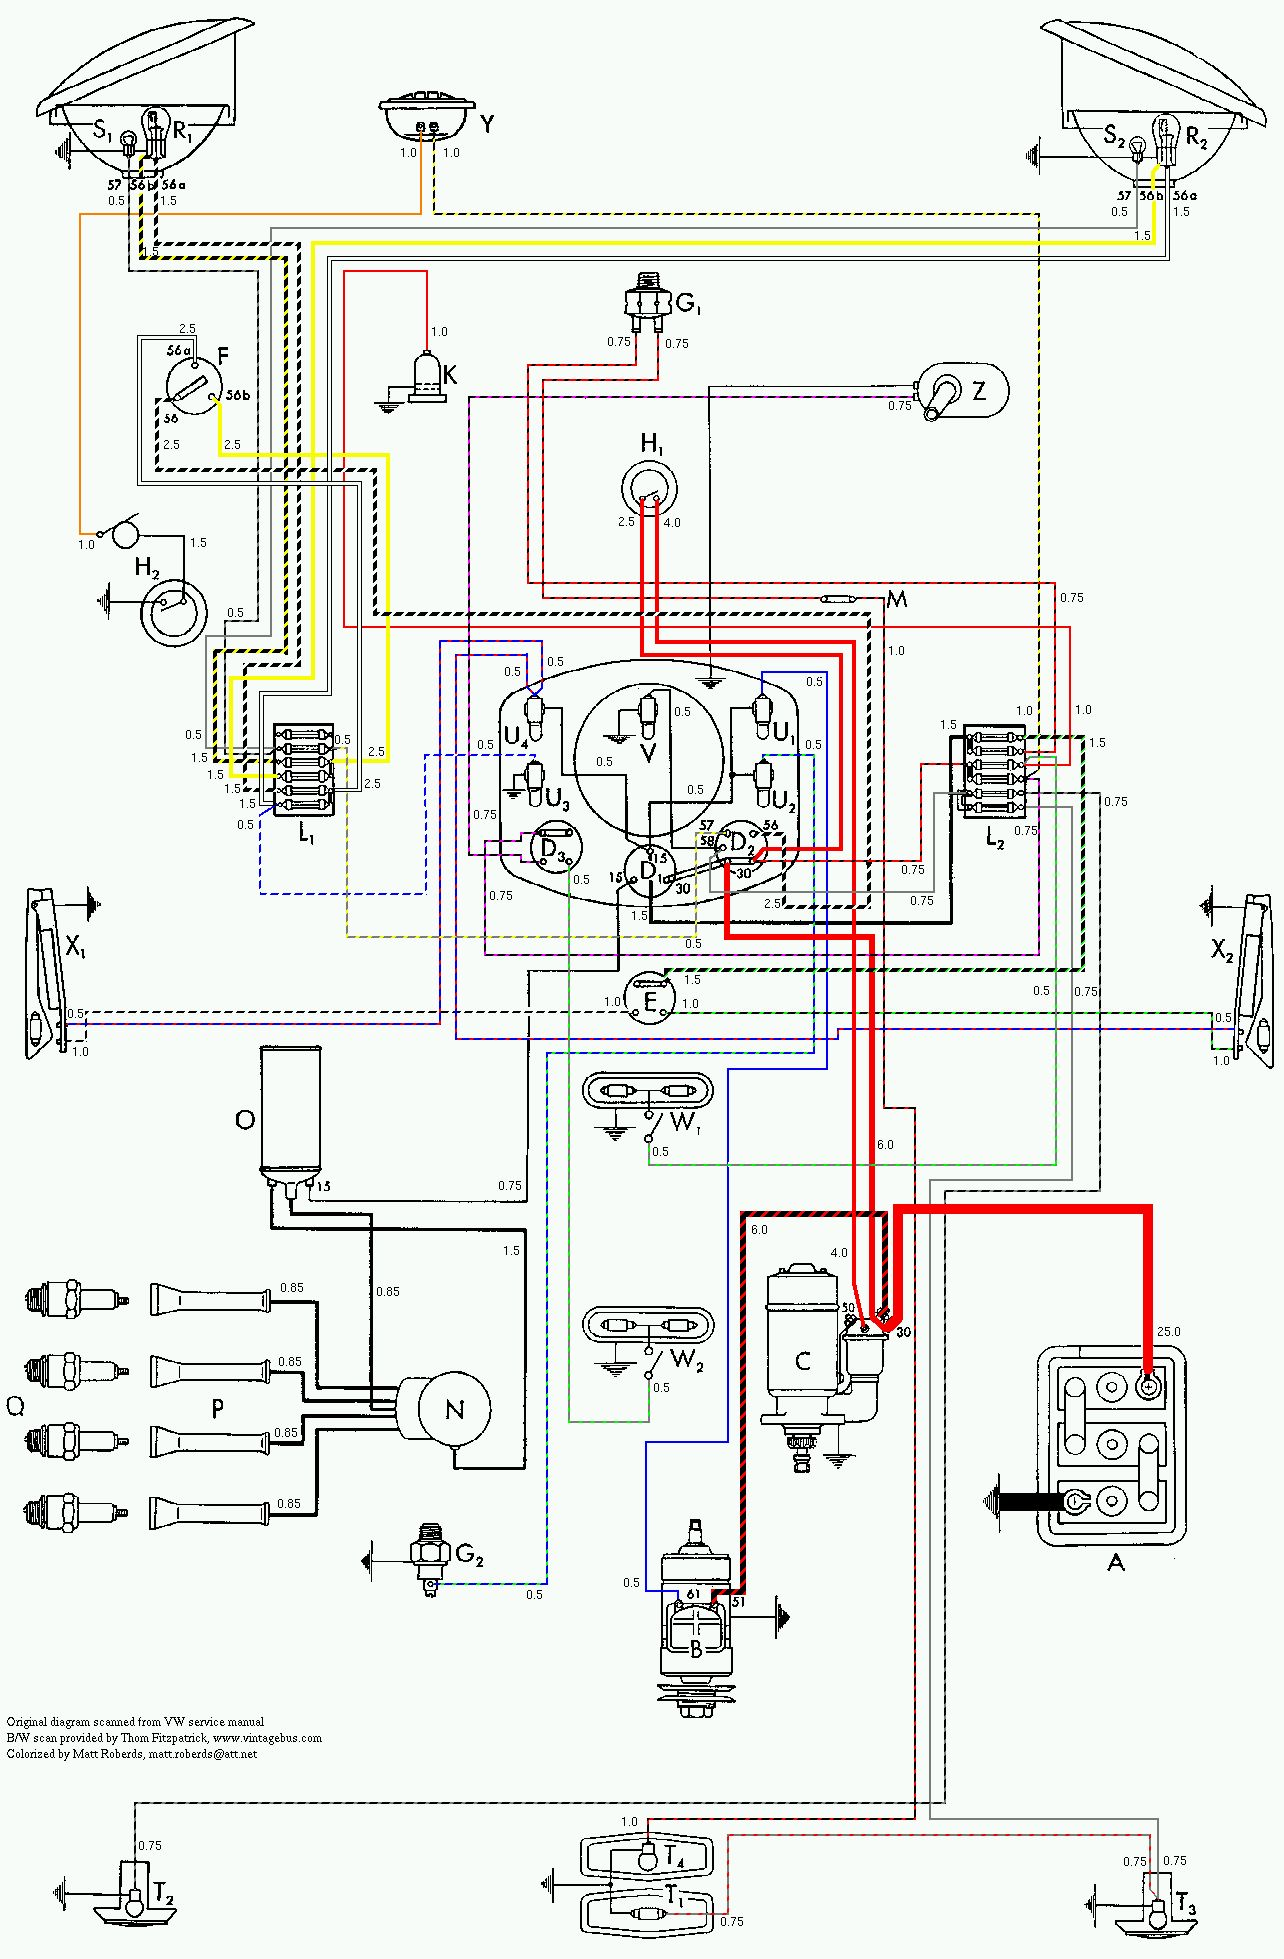 bus 53 color vintagebus com vw bus (and other) wiring diagrams VW Wiring Harness Diagram at edmiracle.co